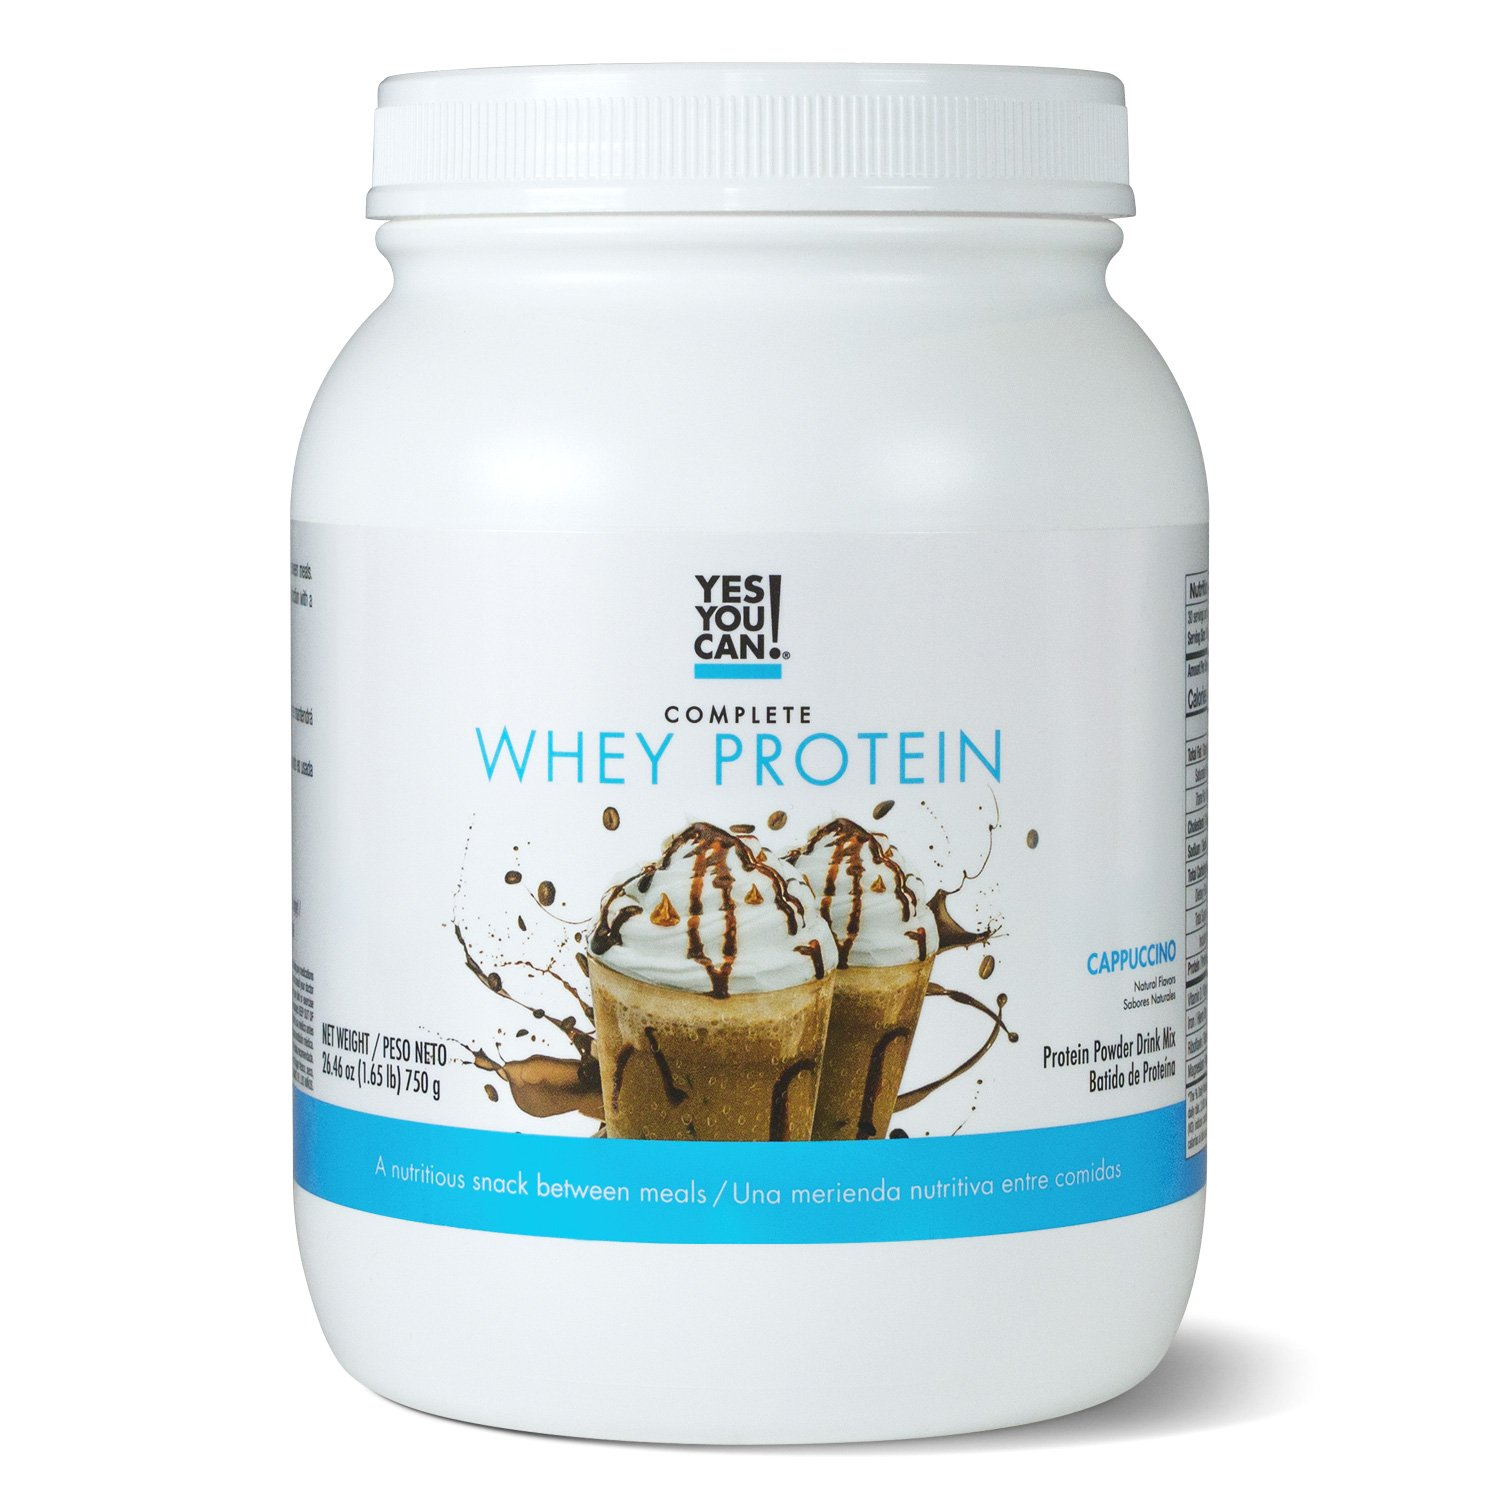 Yes You Can! Complete Whey Protein, a Nutritious Snack Between Meals, 15 Grams of Protein, Helps Lose Weight and Build Muscle, Batidos de Proteína Completo para Bajar de Peso - 1.65 Lb, Cappuccino